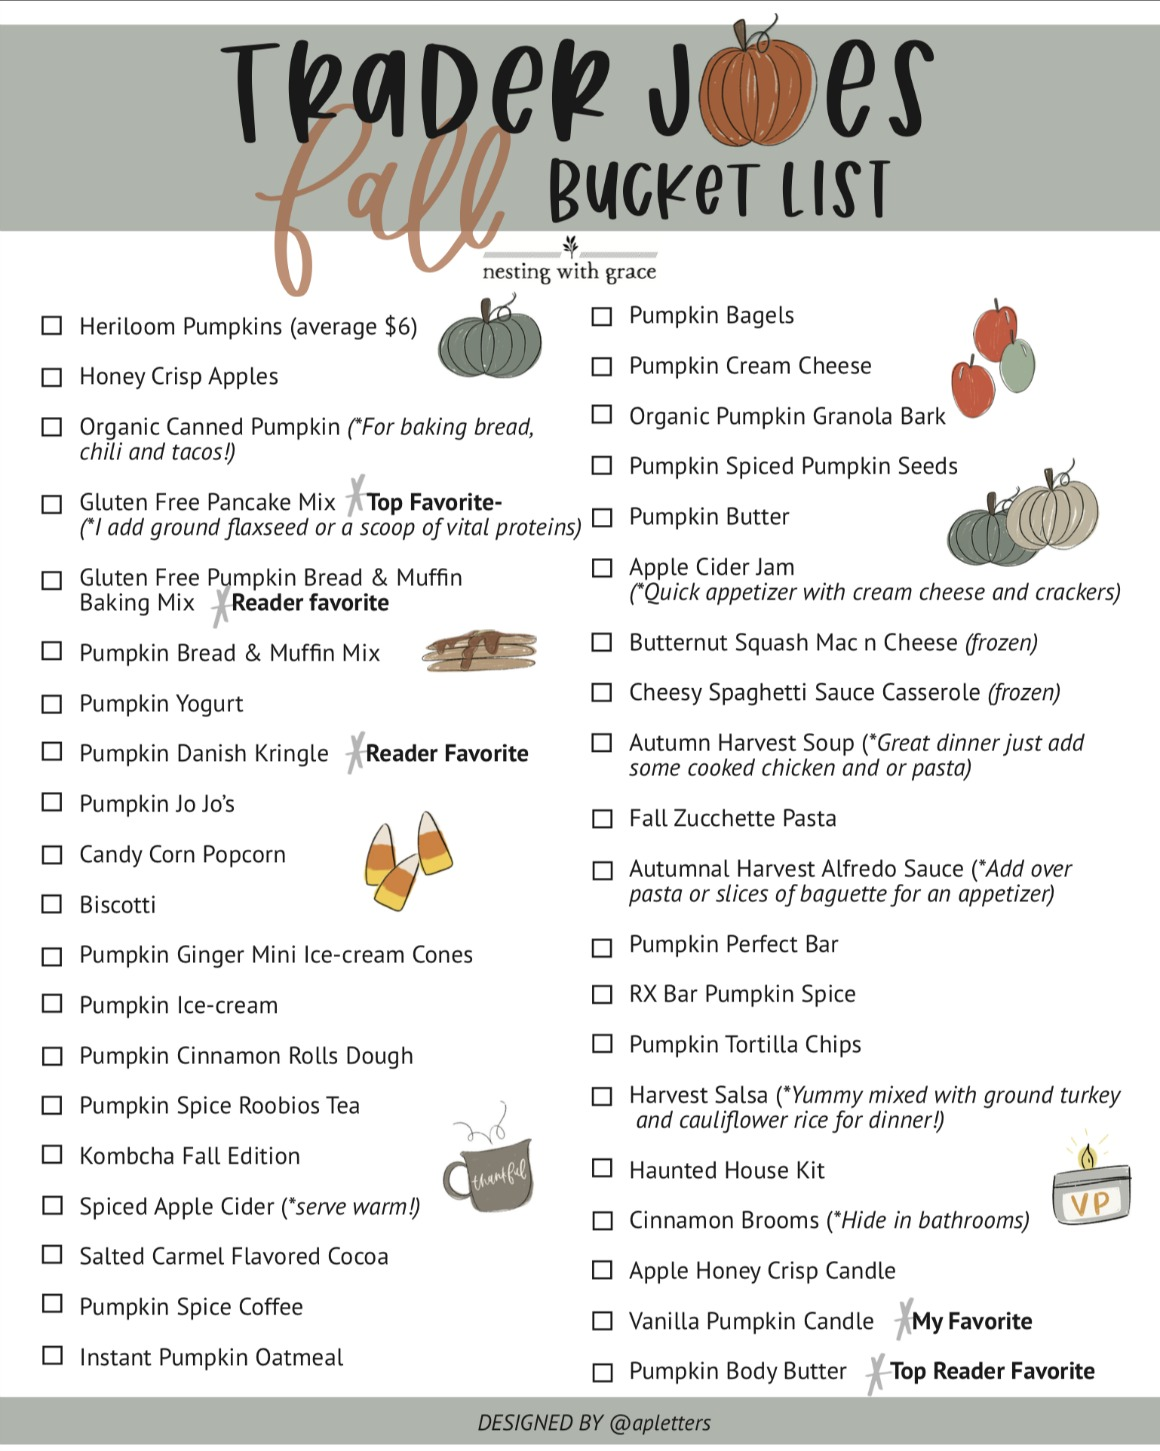 Trader Joe's Fall Bucket List- Top 45 Items - Nesting With Grace